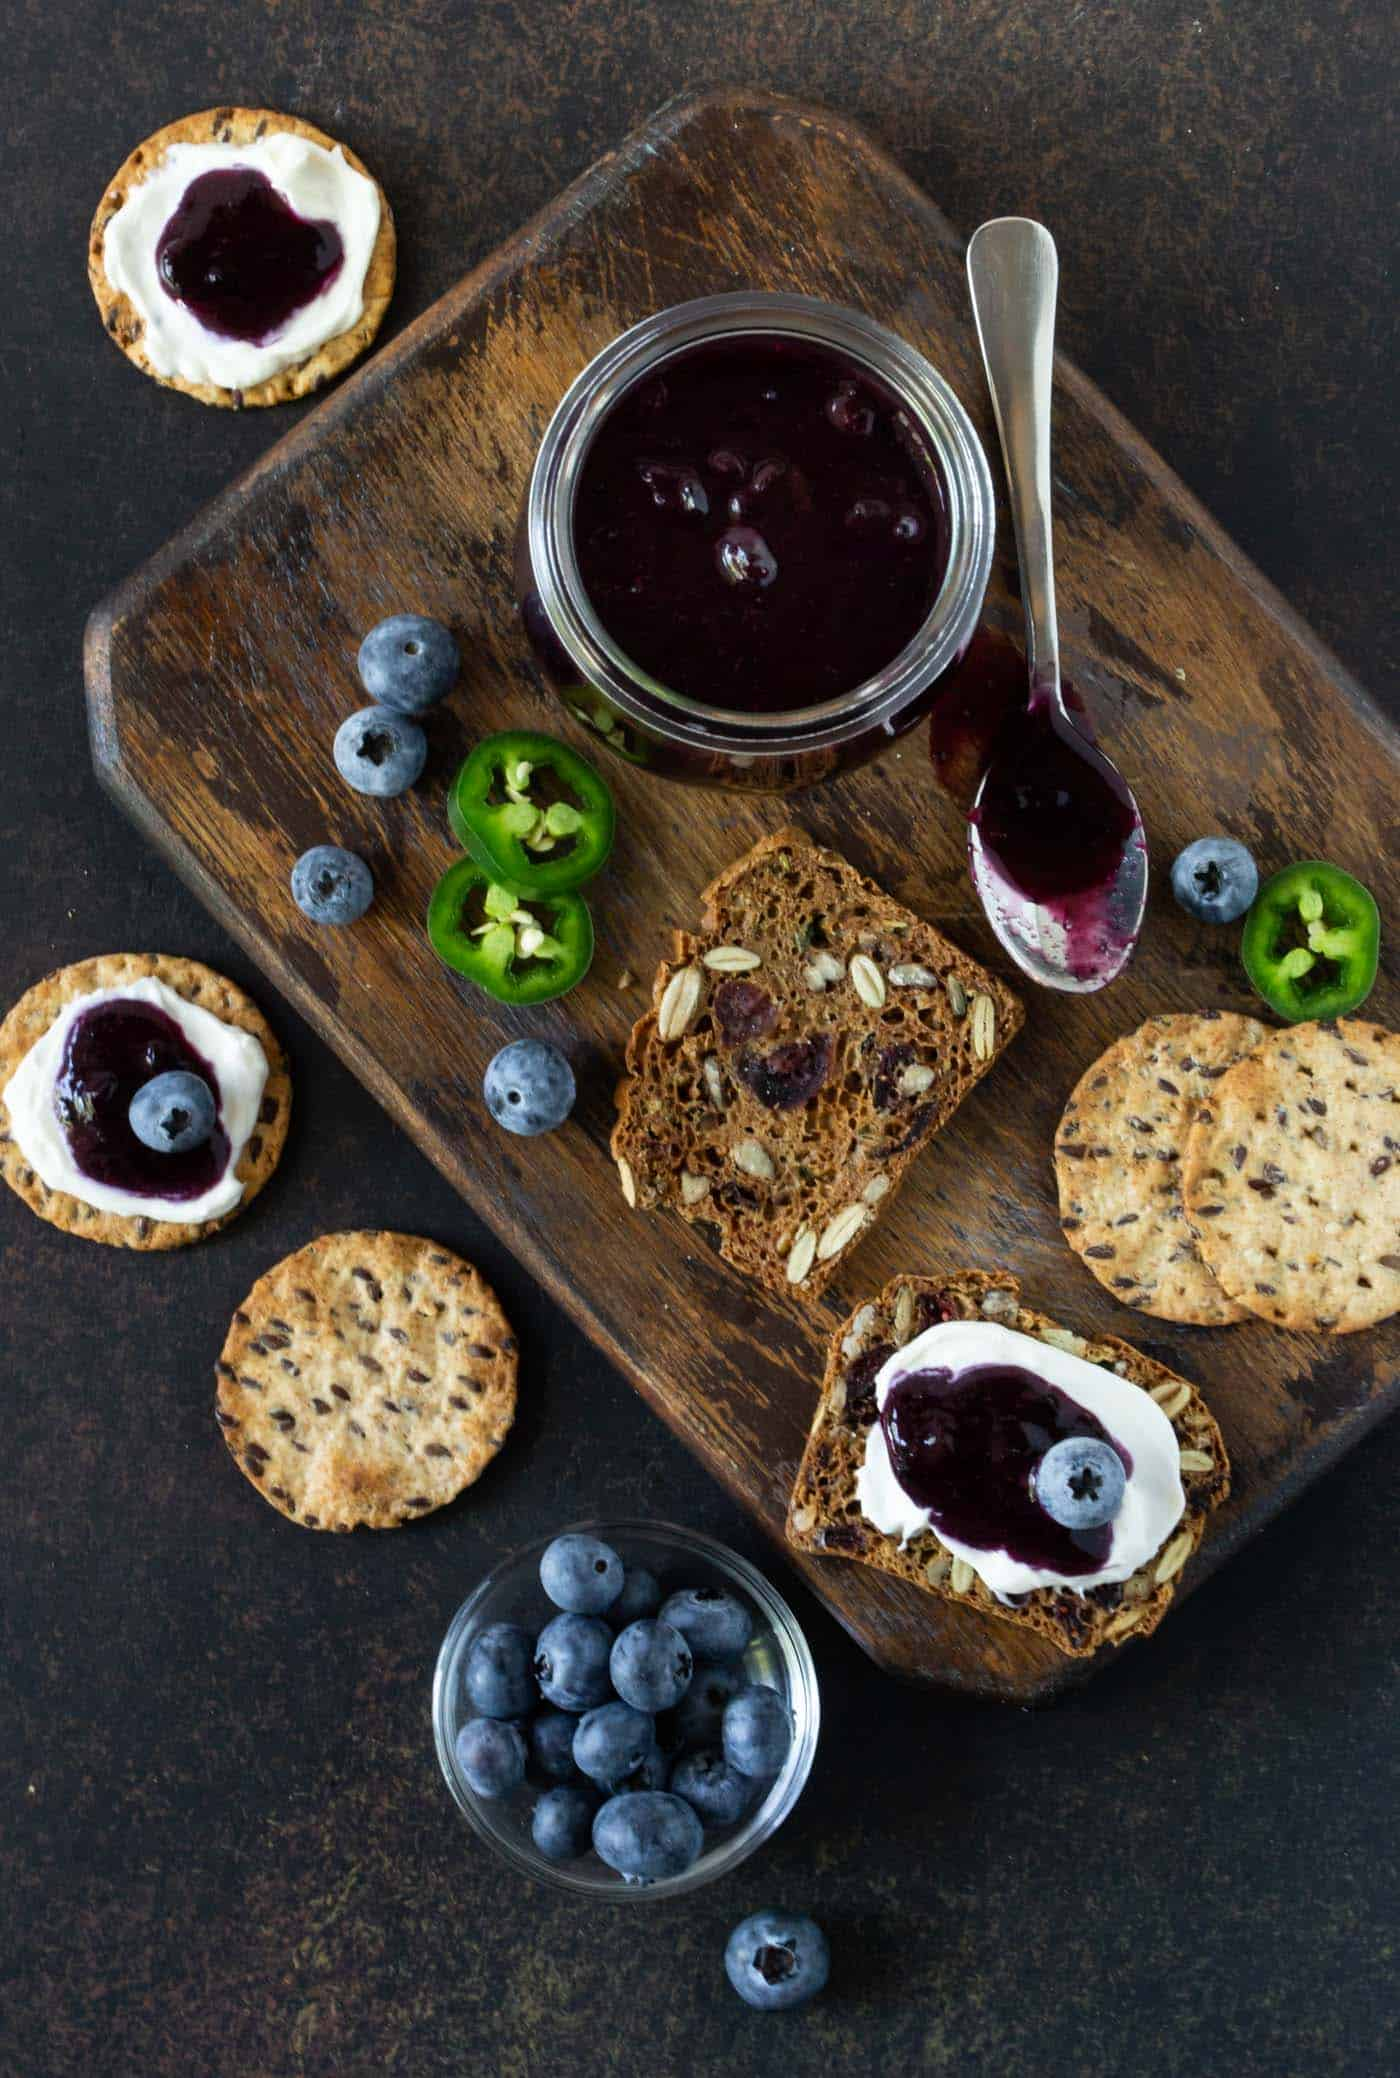 Crackers spread with cream cheese and Easy Blueberry Jalapeno Freezer Jam on a dark wood cutting board. Surrounded by jar of jam, spoon and extra fresh blueberries and jalapeno slices.